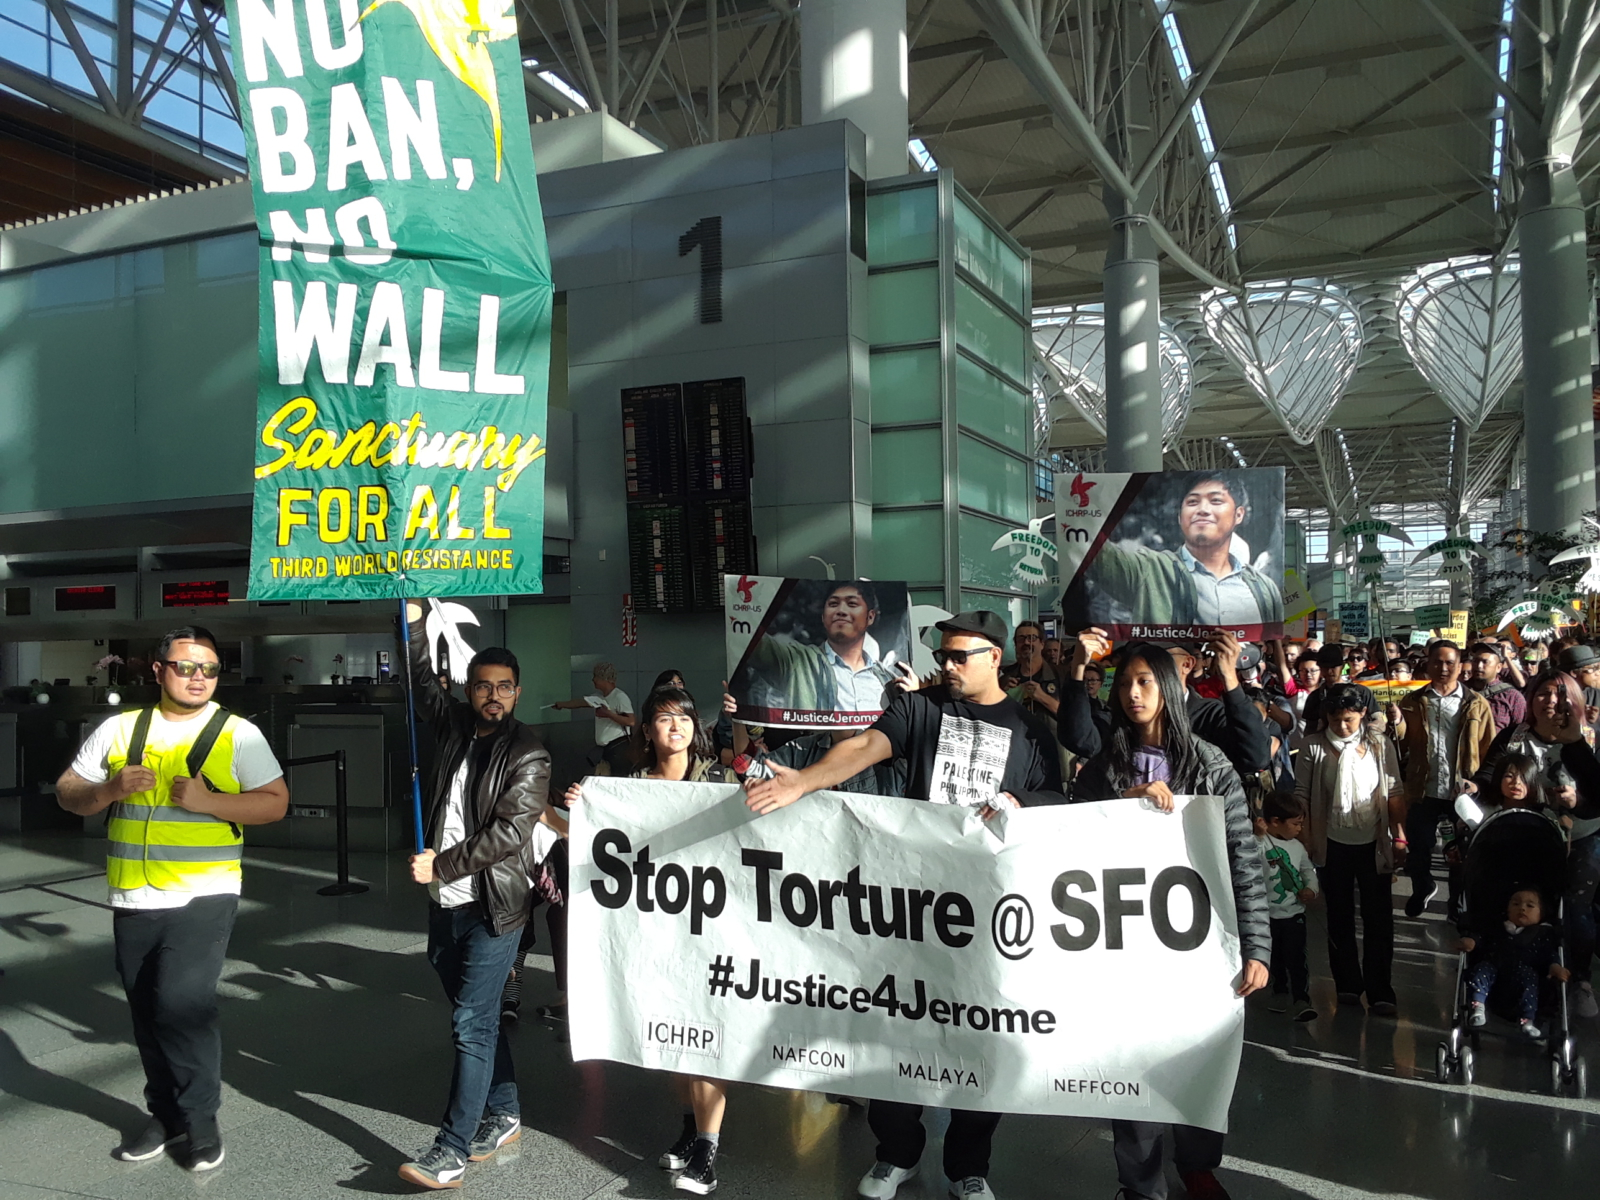 Filipino activist tortured at SFO is yet another victim of the U.S. war machine